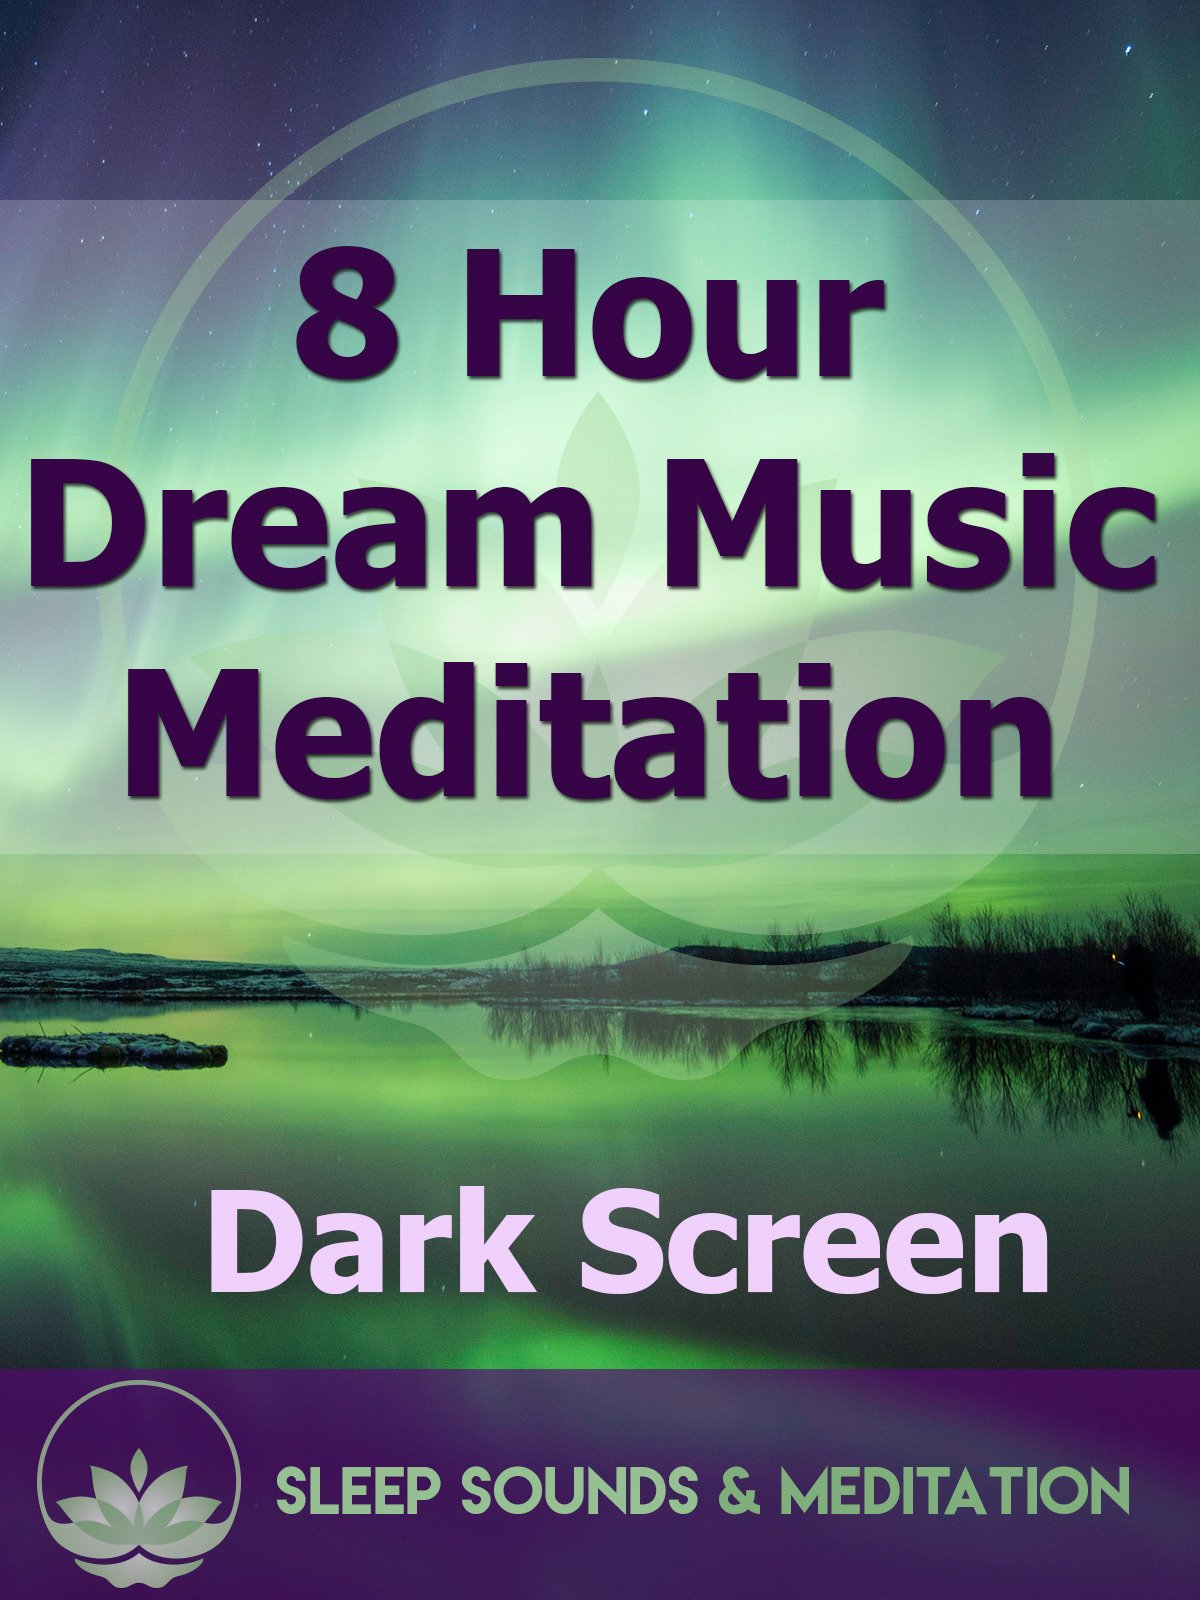 8 Hour Dream Music Meditation, Dark Screen